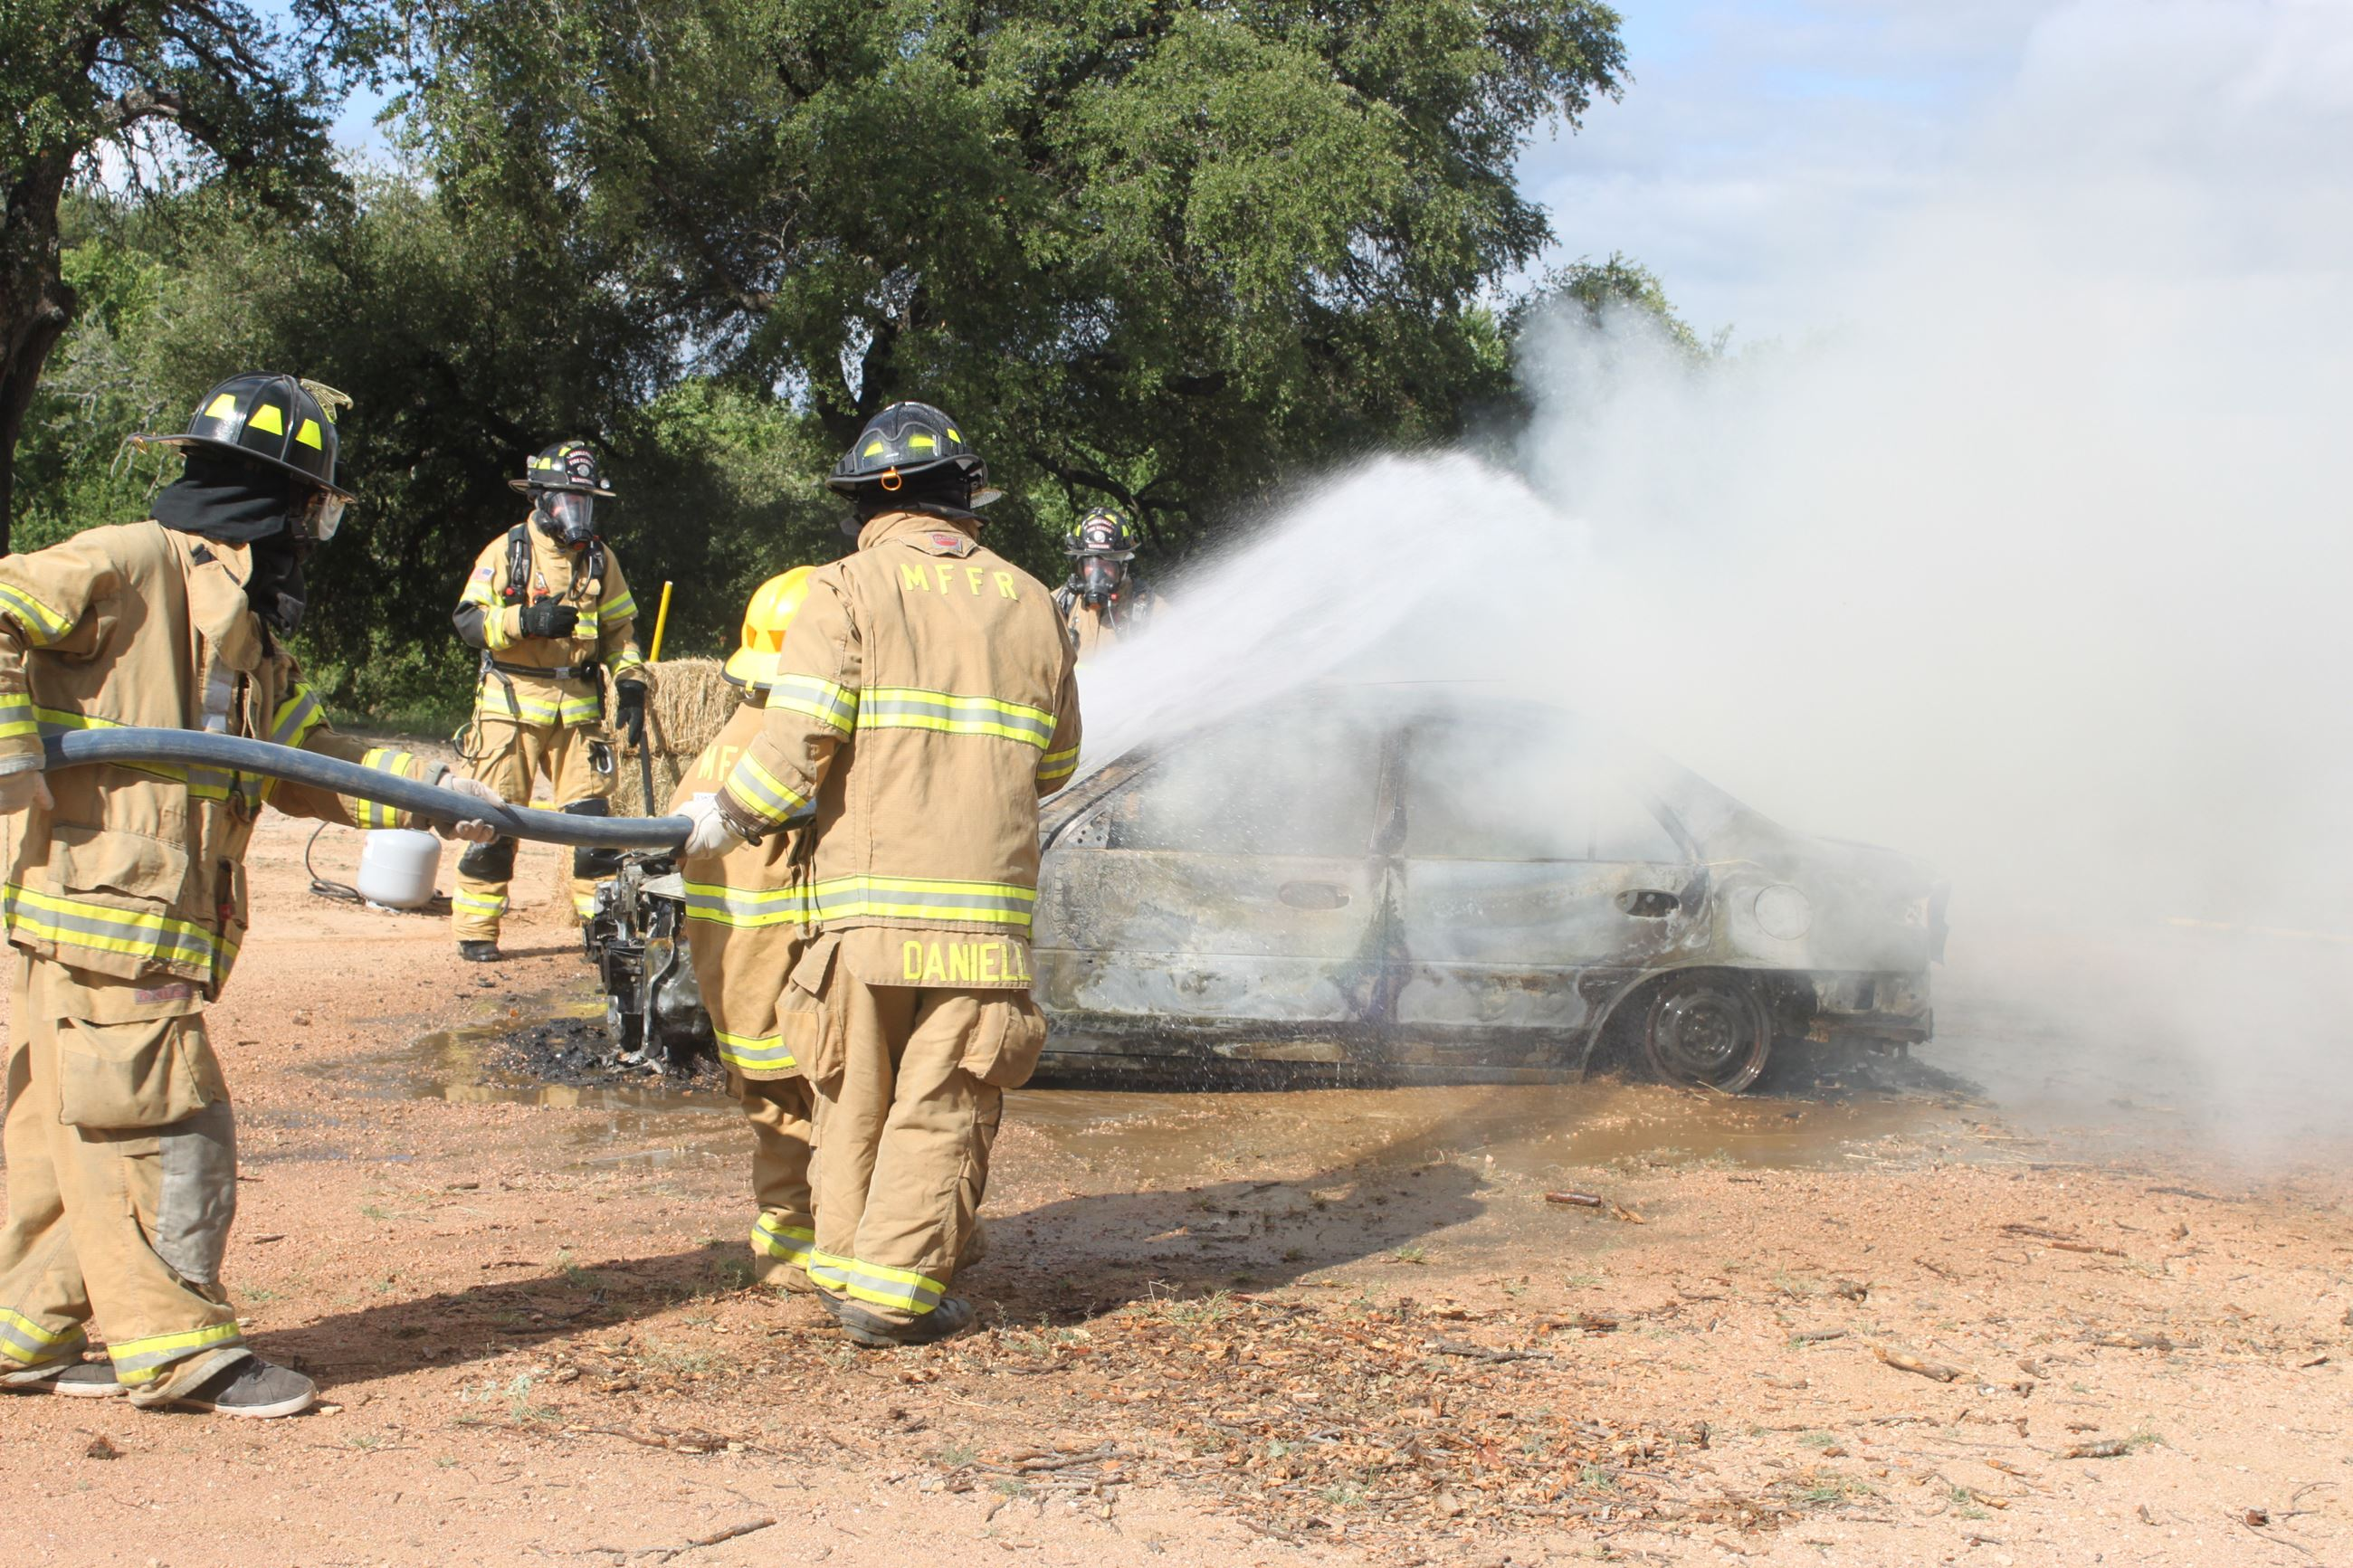 Firefighters use hoses on a burning car